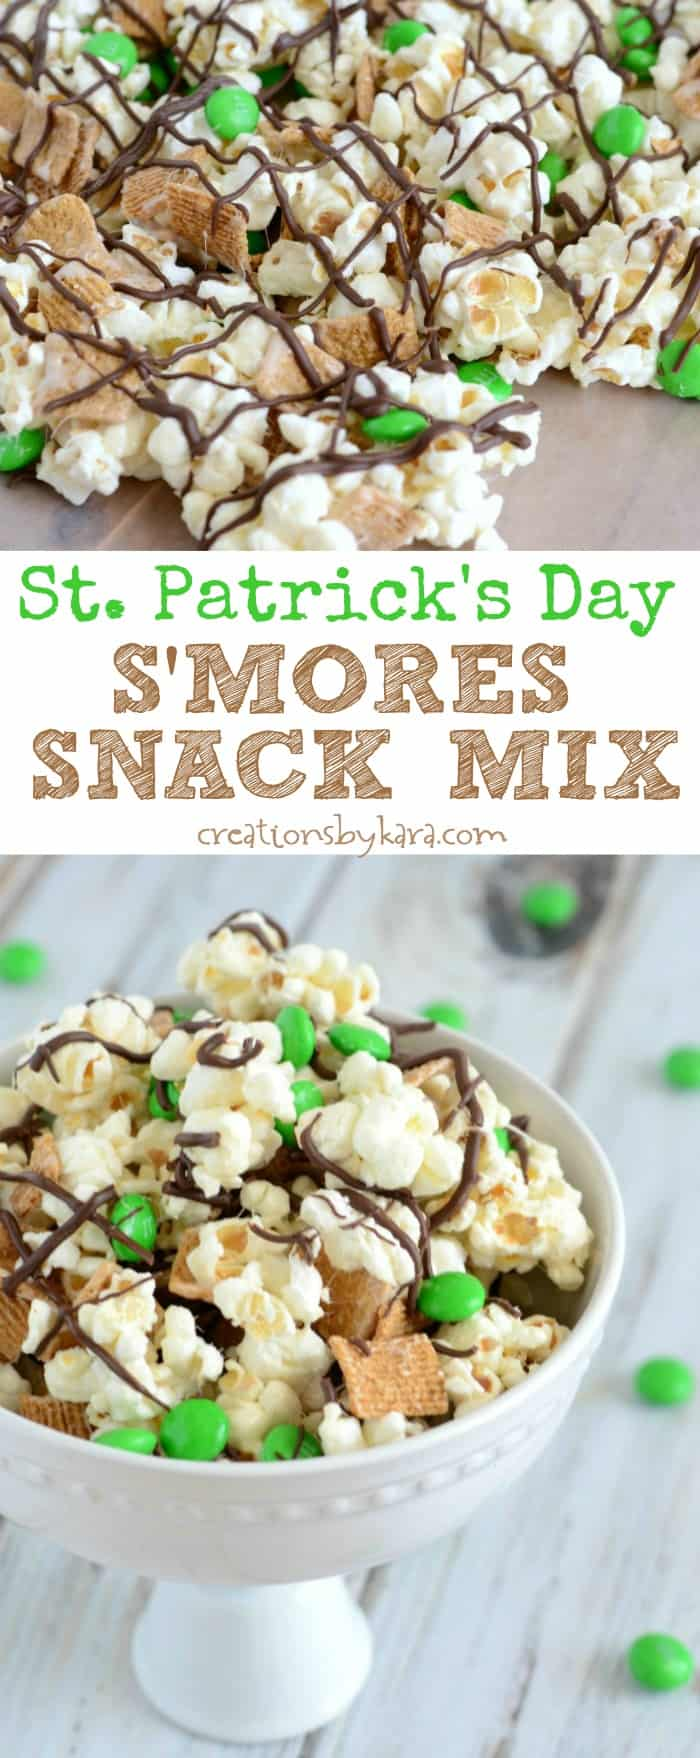 Recipe for fun and yummy St. Patricks Day S'more Snack Mix  - A perfect St. Patricks Day recipe